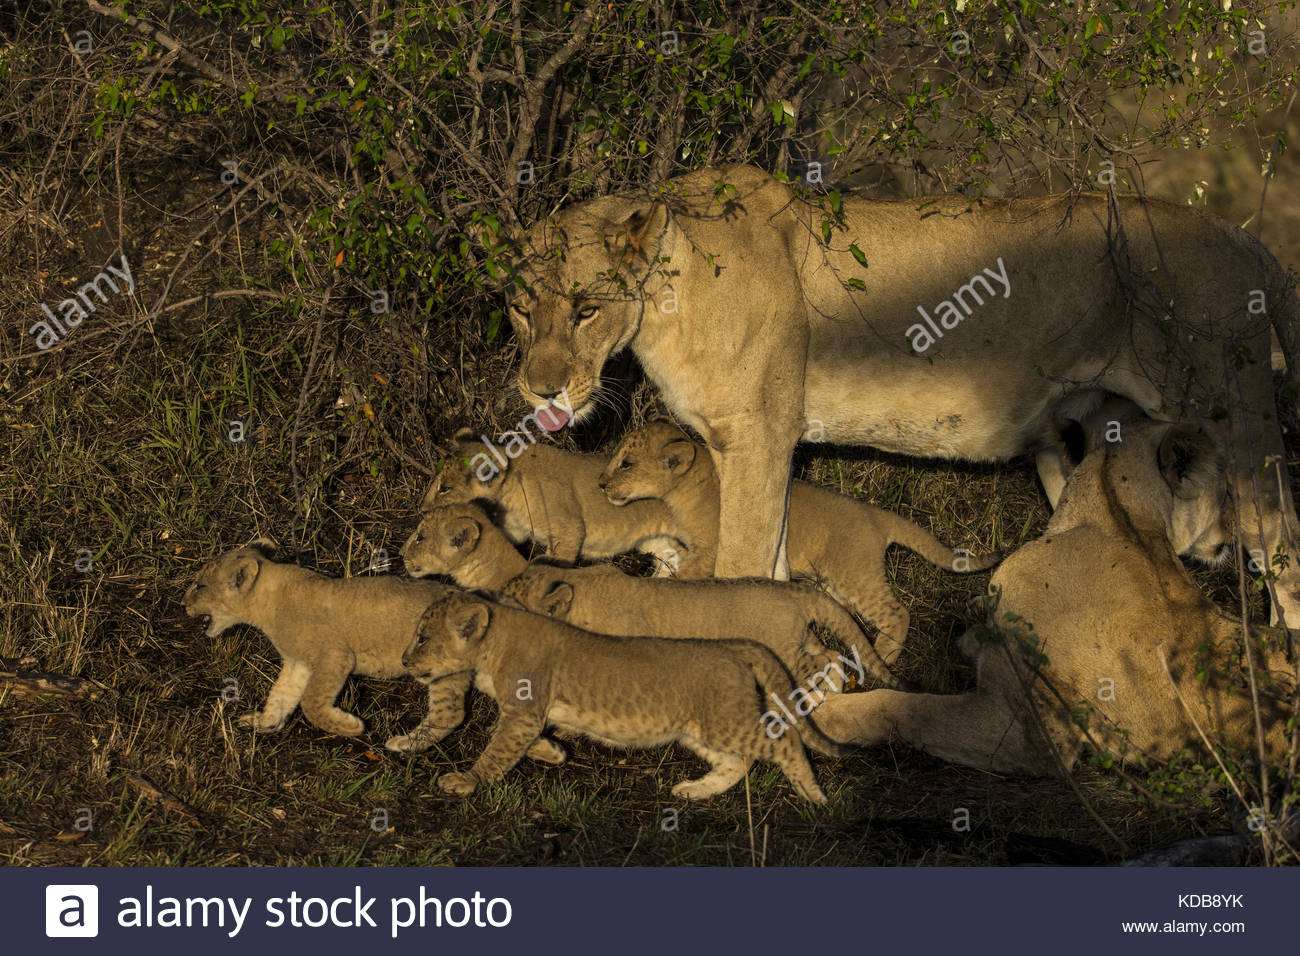 A lioness, Panthera leo, and cubs on the move. Stock Photo